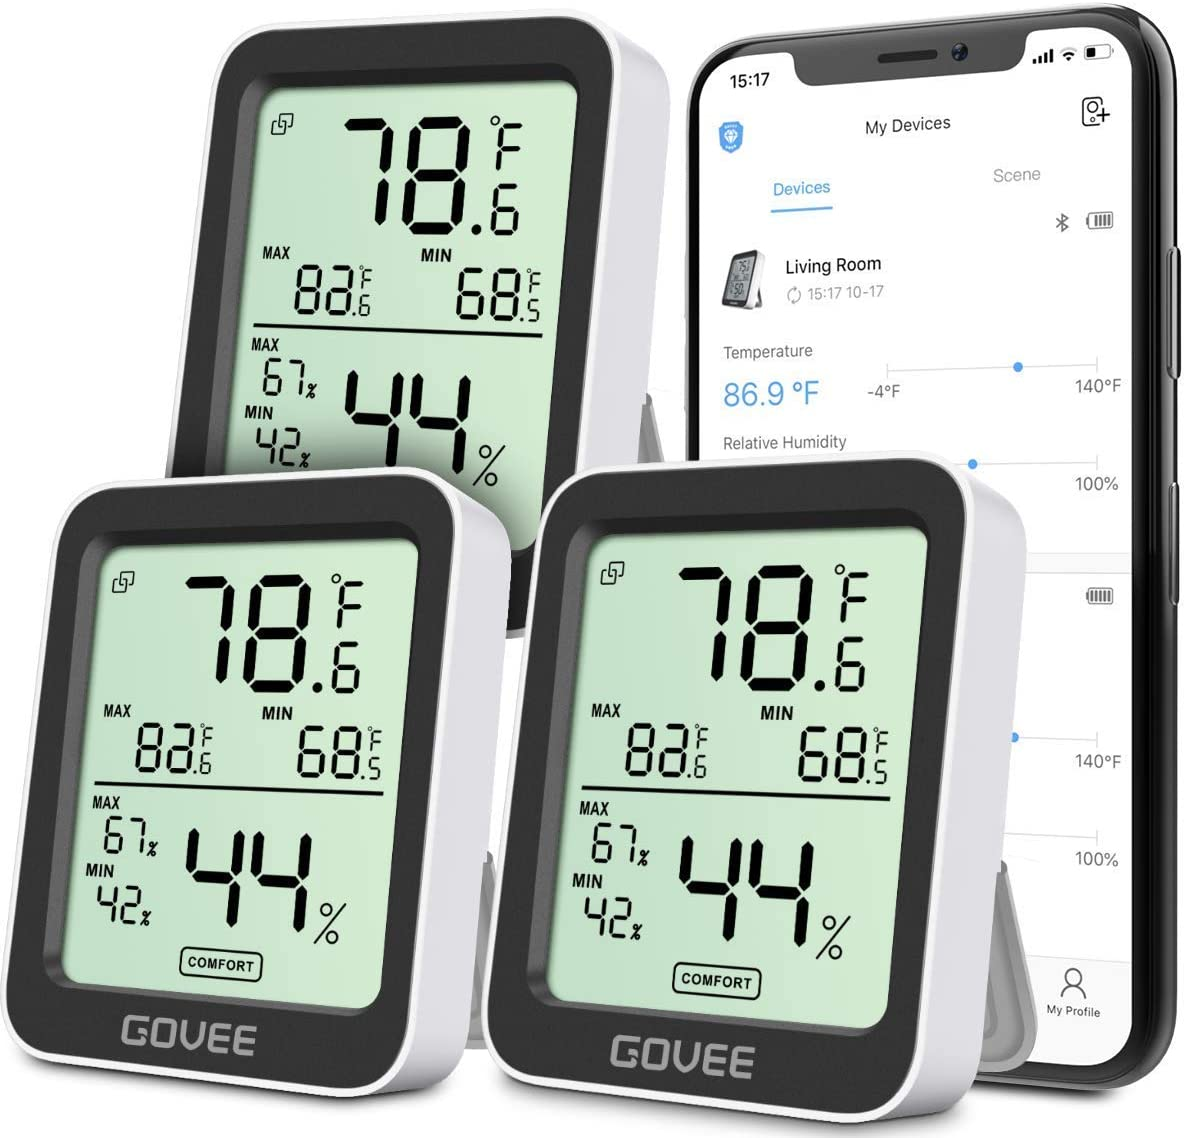 Bundle-3 Items: Govee Thermometer Hygrometer 3 Pack, Accurate Indoor Temperature Humidity Sensor with Notification Alert, LCD Bluetooth Temp Humidity Monitor with Data Storage